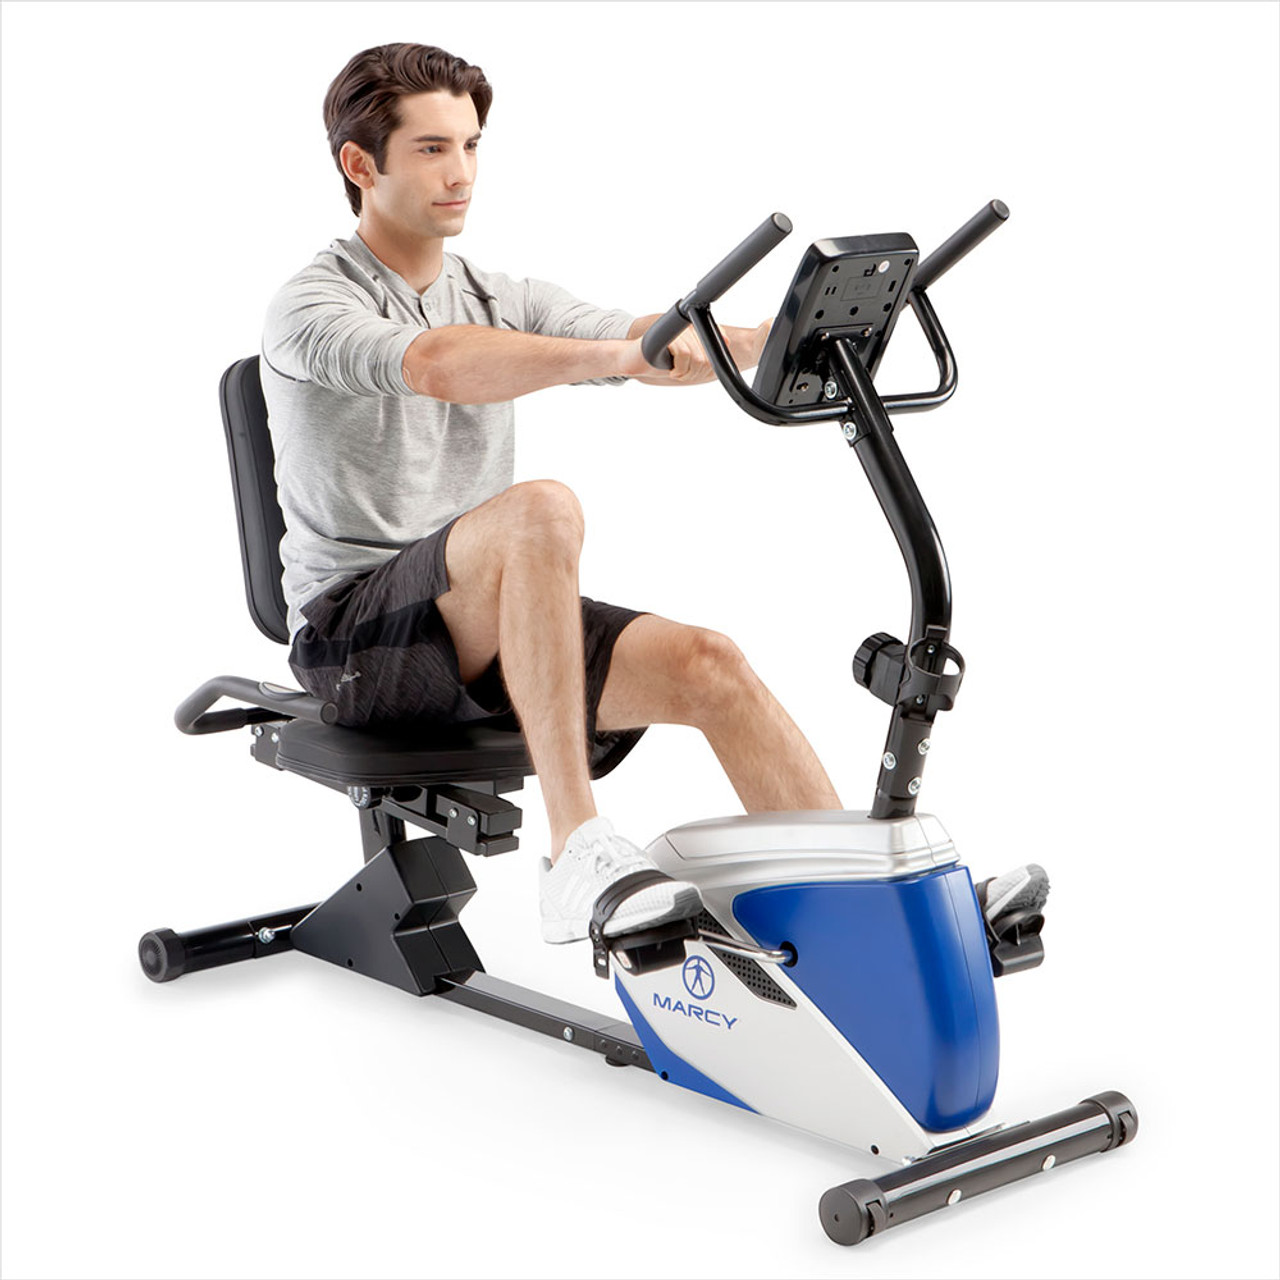 The Marcy Magnetic Recumbent Bike ME-1019R has large / looped pedals for safety